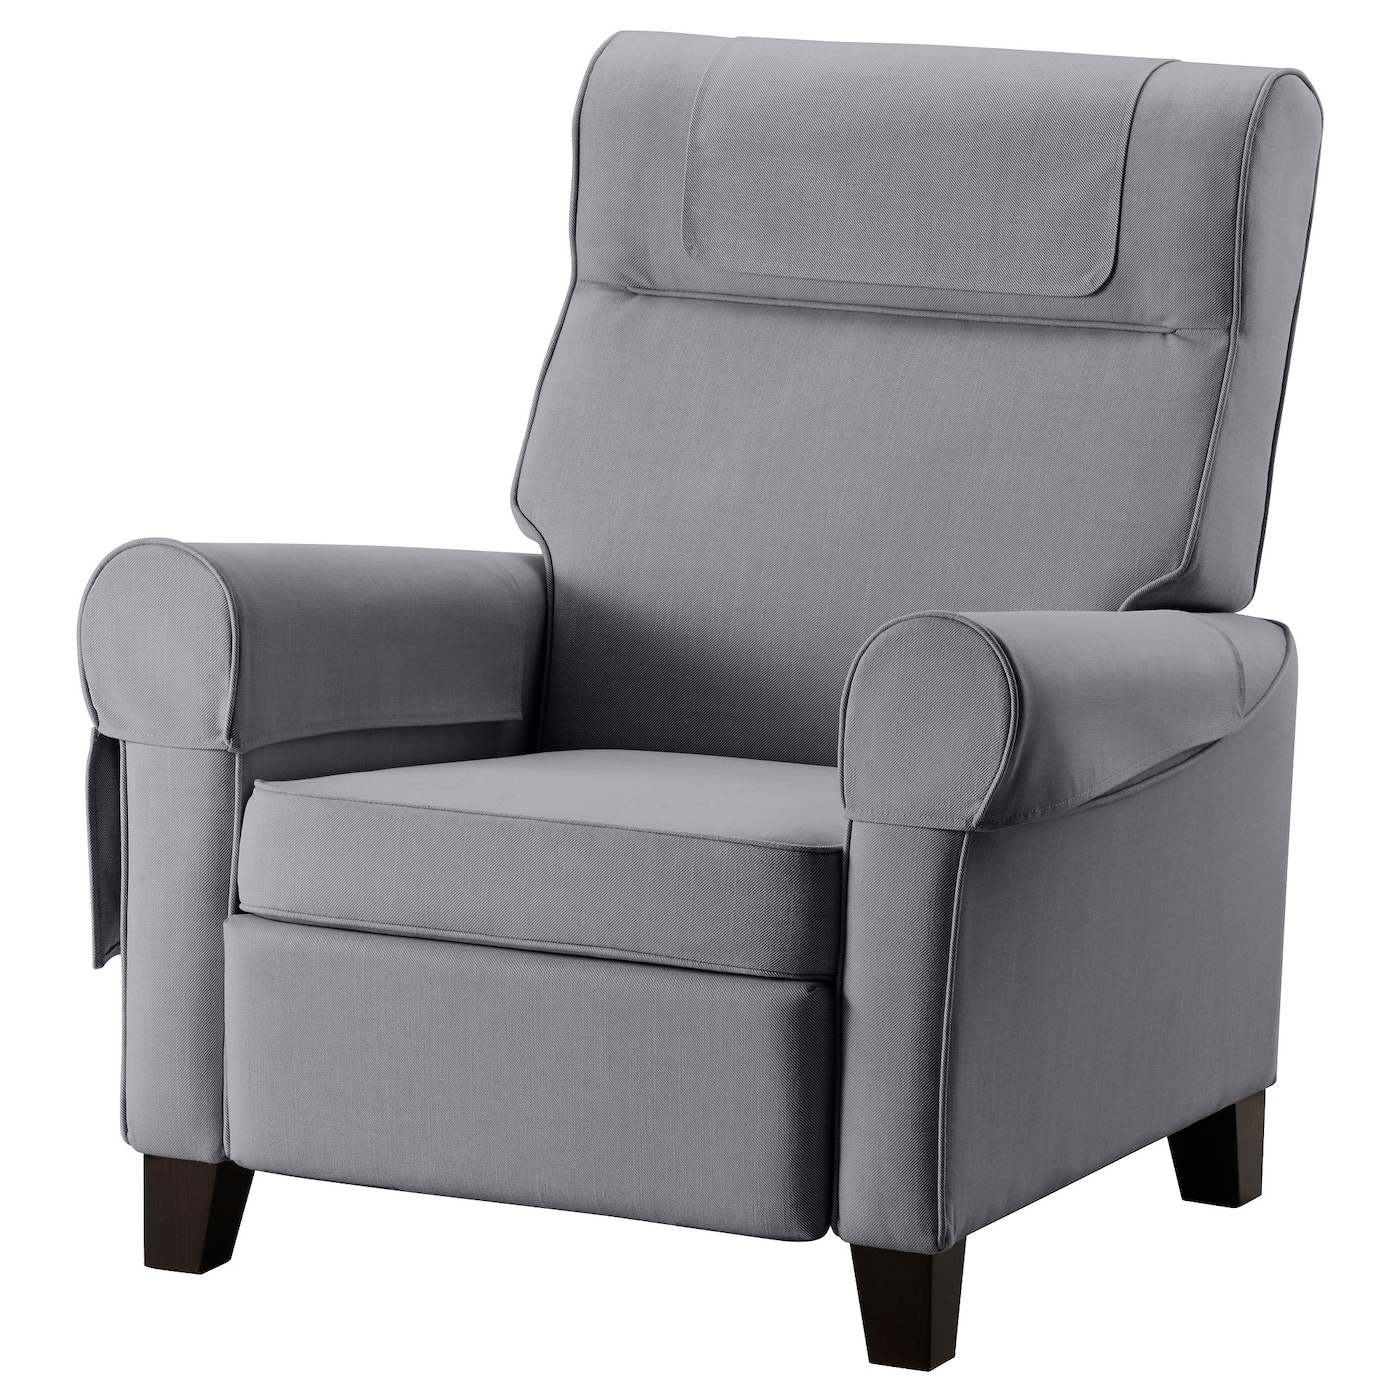 IKEA MUREN Recliner When You Lean Backwards, The Built In Footstool Folds  Out.